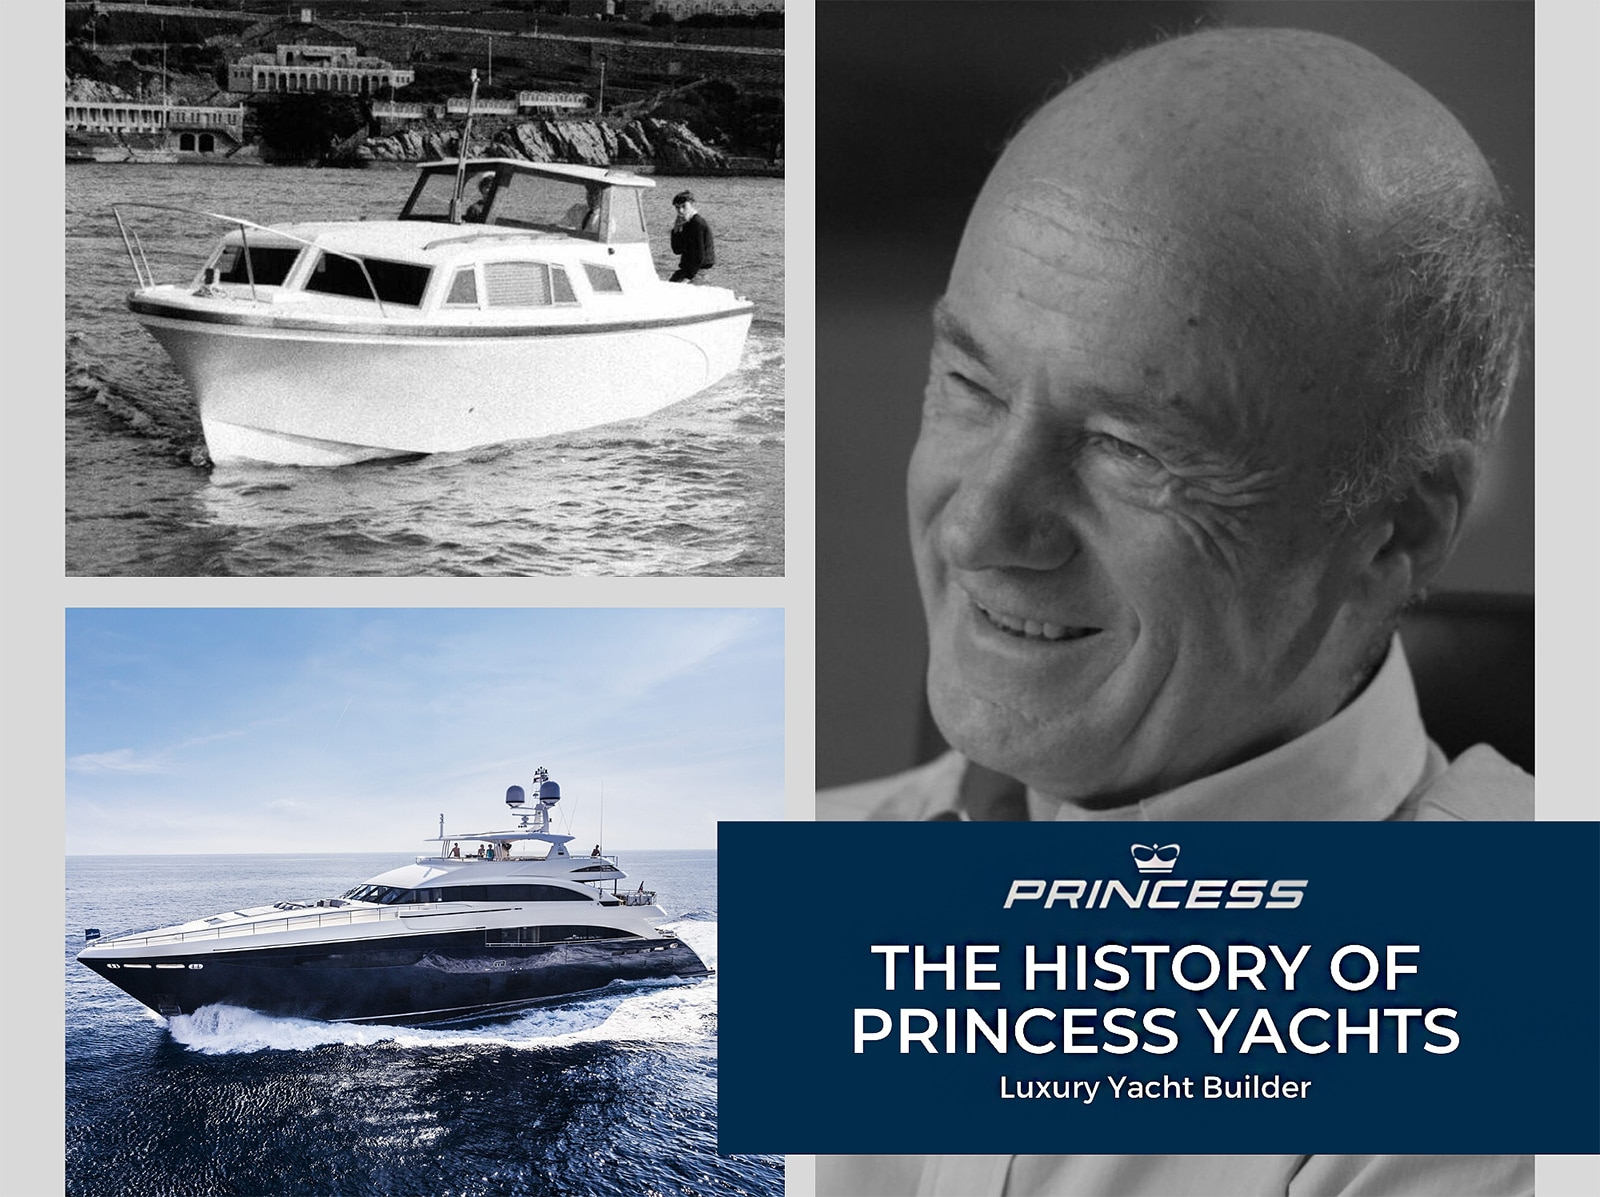 history of princess yachts